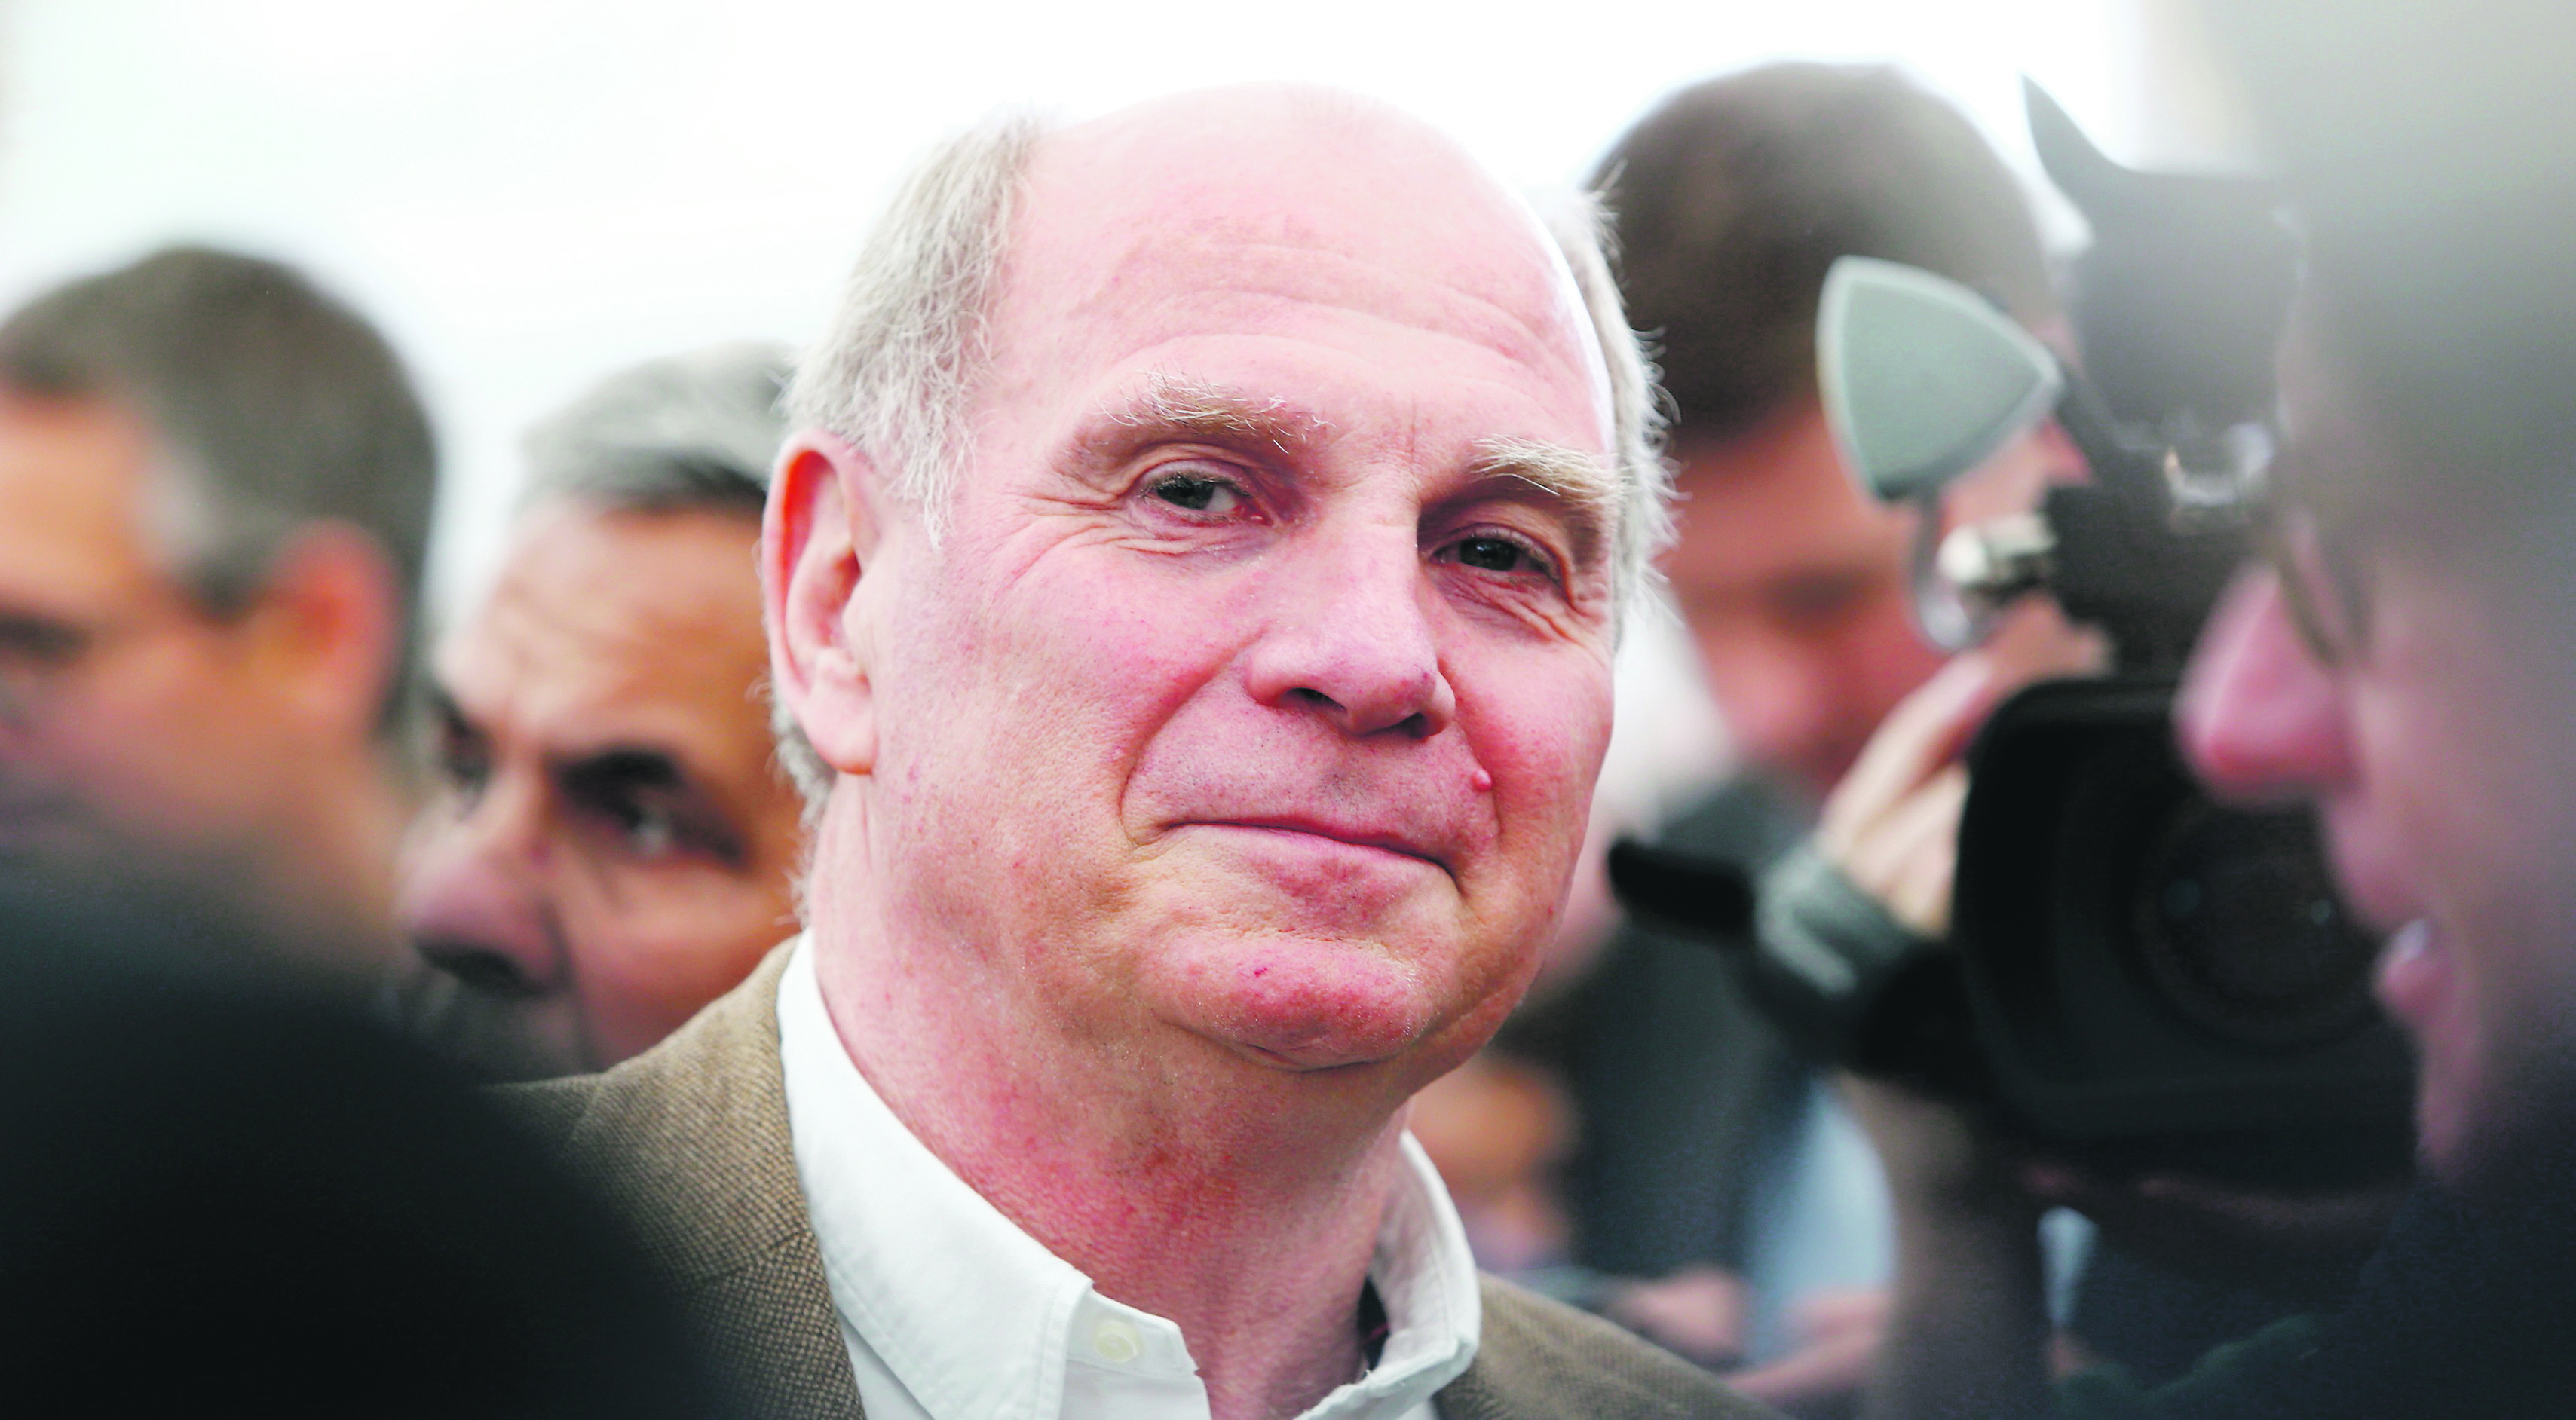 Former Bayern Munich president Uli Hoeness arrives for the official foundation stone laying ceremony of Bayern Munich's youth training centre in Munich, southern Germany, October 16, 2015. The construction project will cost about 70 million Euro and will open the doors in summer 2017. REUTERS/Michaela Rehle